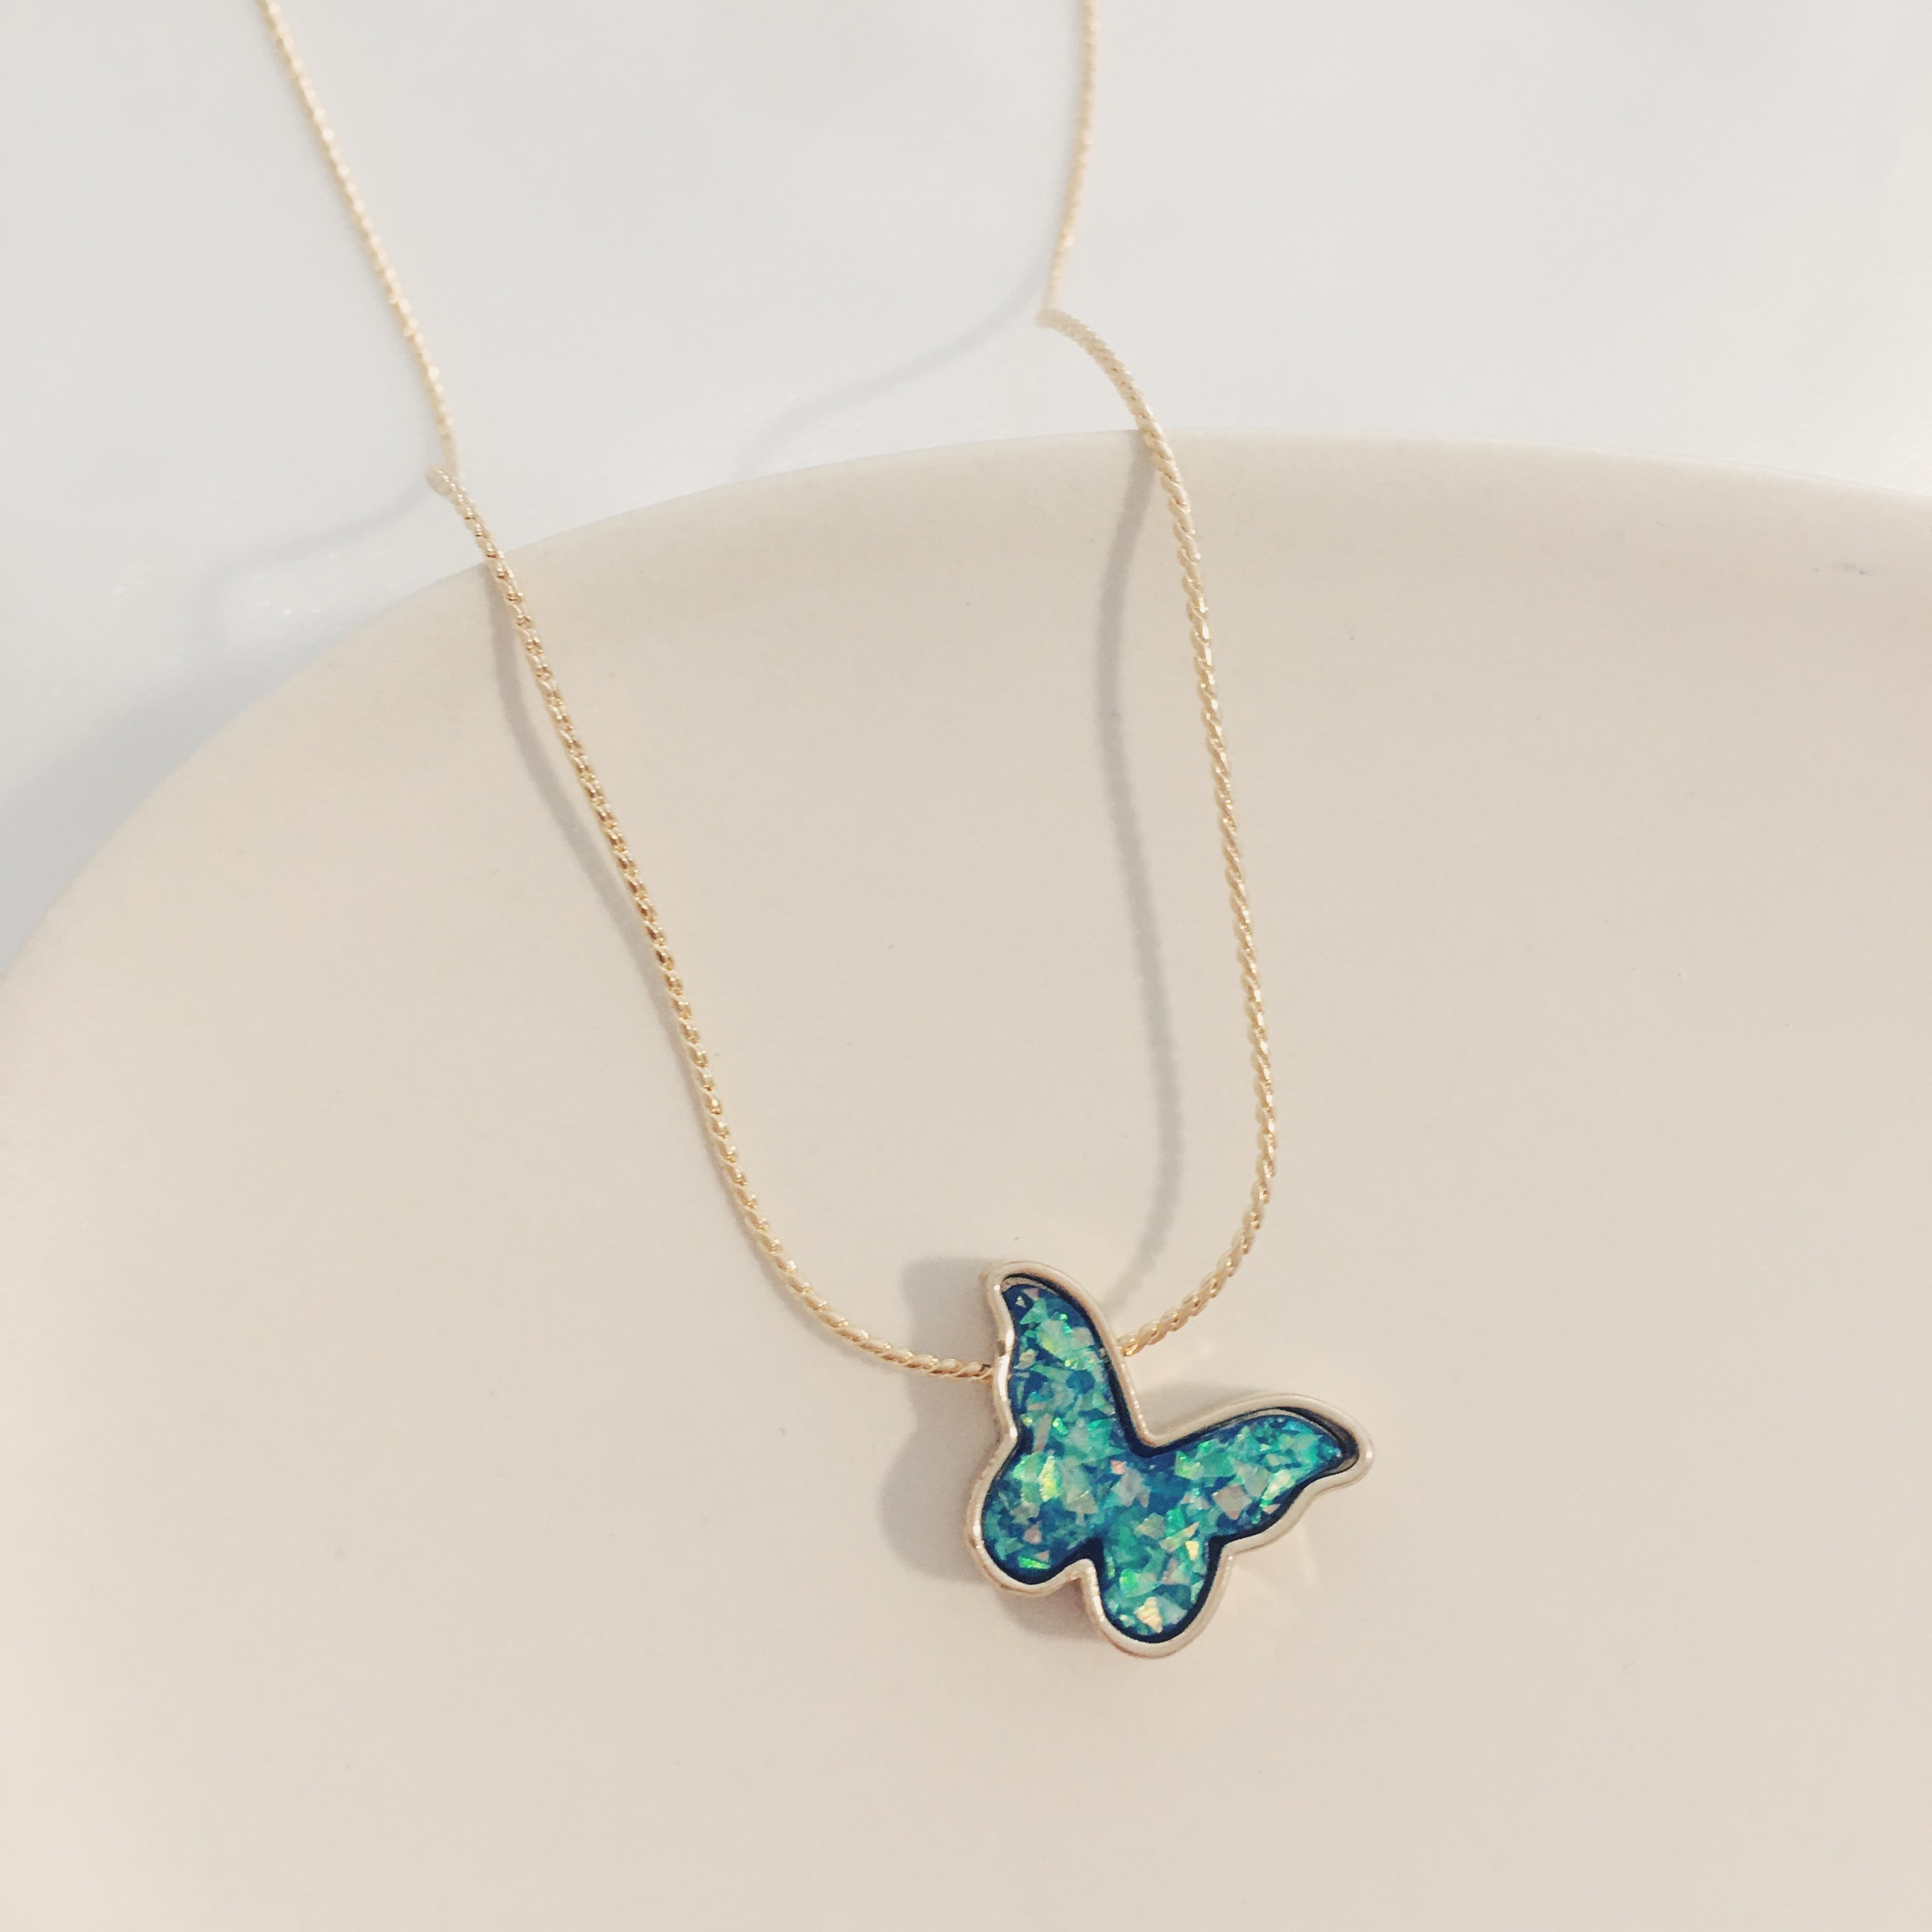 Sky Blue Butterfly Necklace TheCloset101